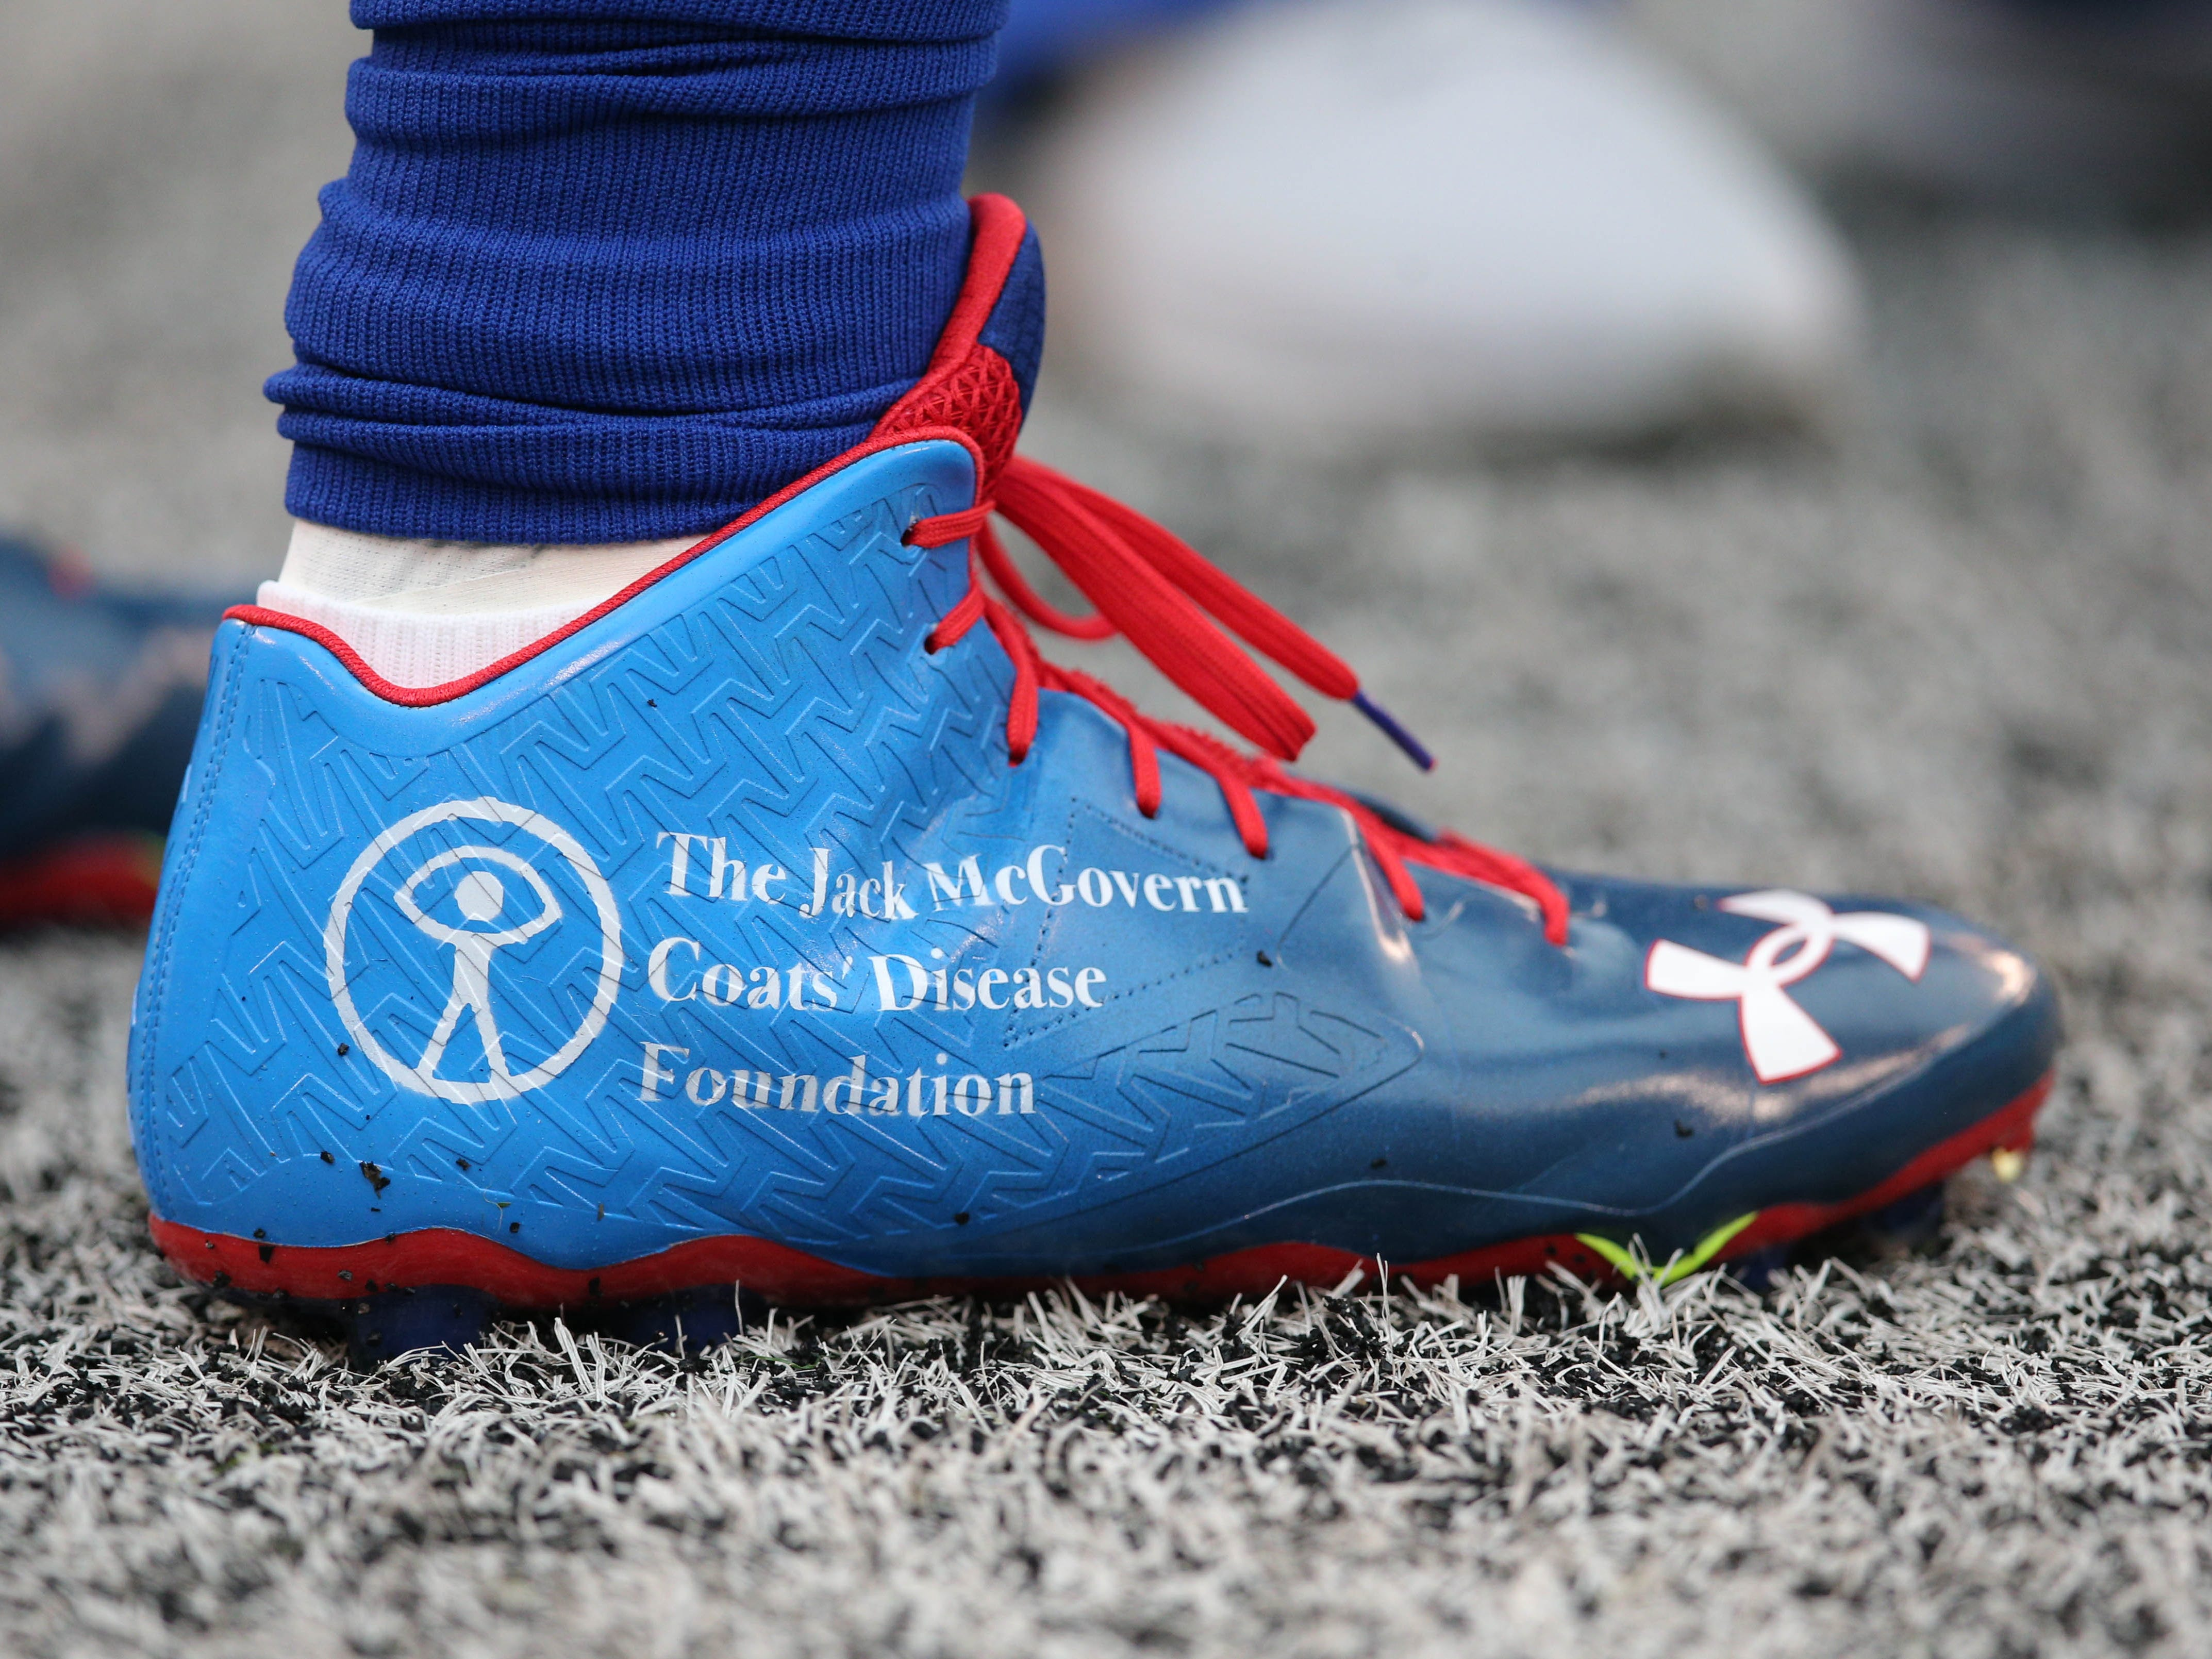 New York Giants linebacker Olivier Vernon wears special cleats before a game against the Chicago Bears at MetLife Stadium.